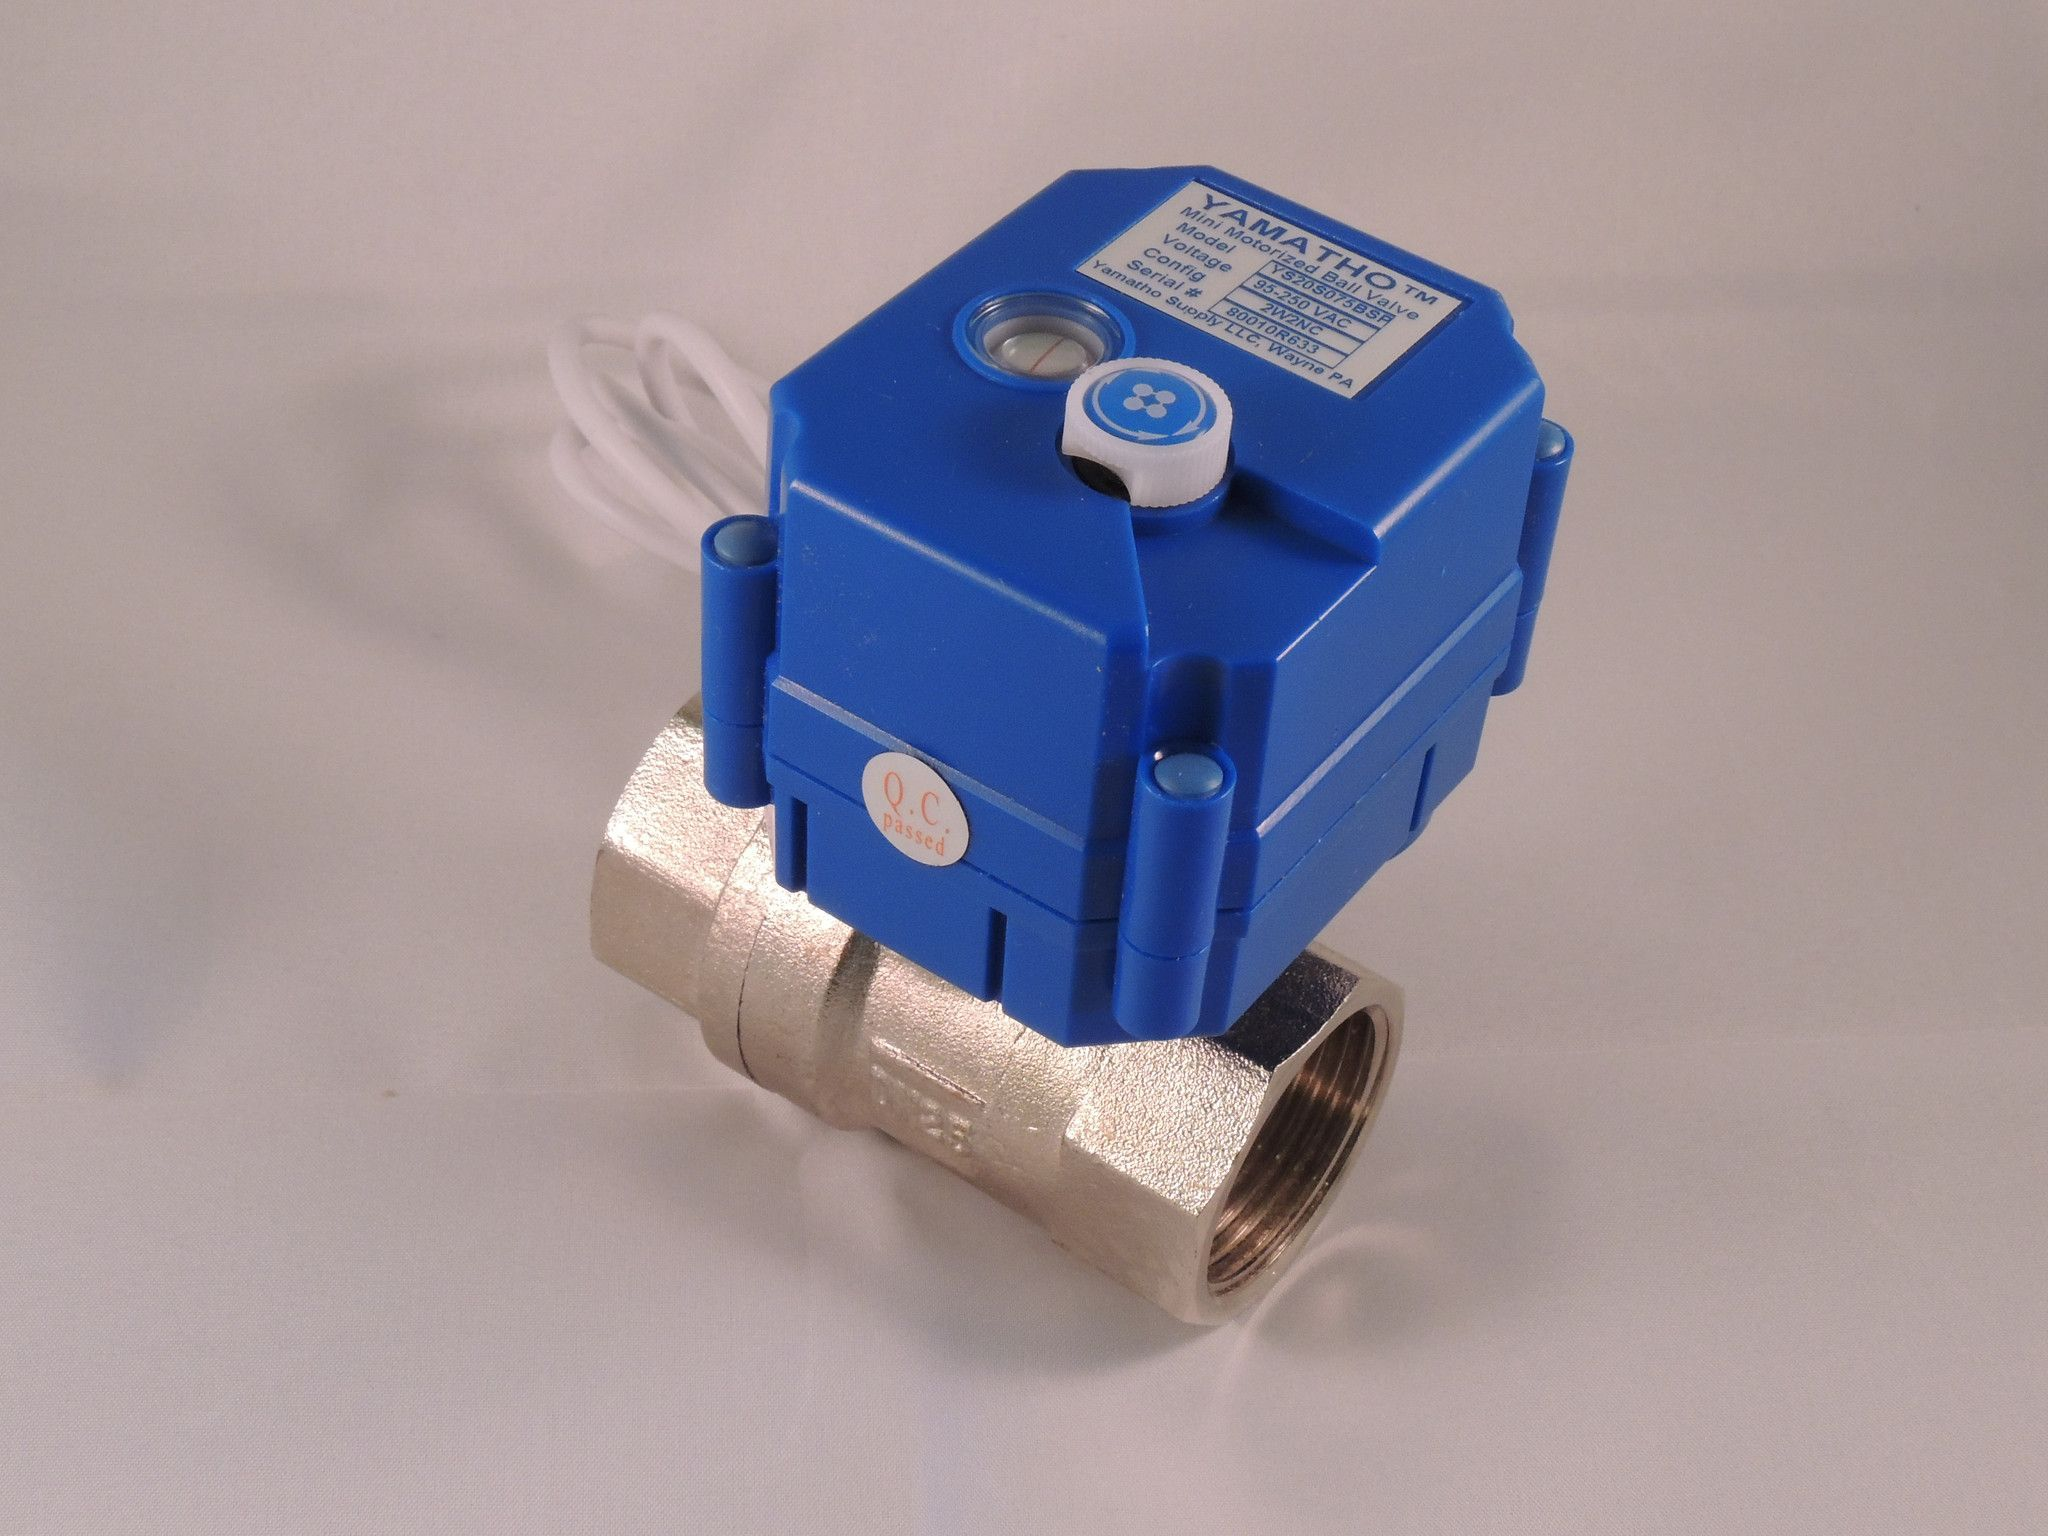 Electric Ball Valve Ys20s 2 Wires Actuator 95 250 Vac Yamavalve Wire Wiring Electrically Operated Control